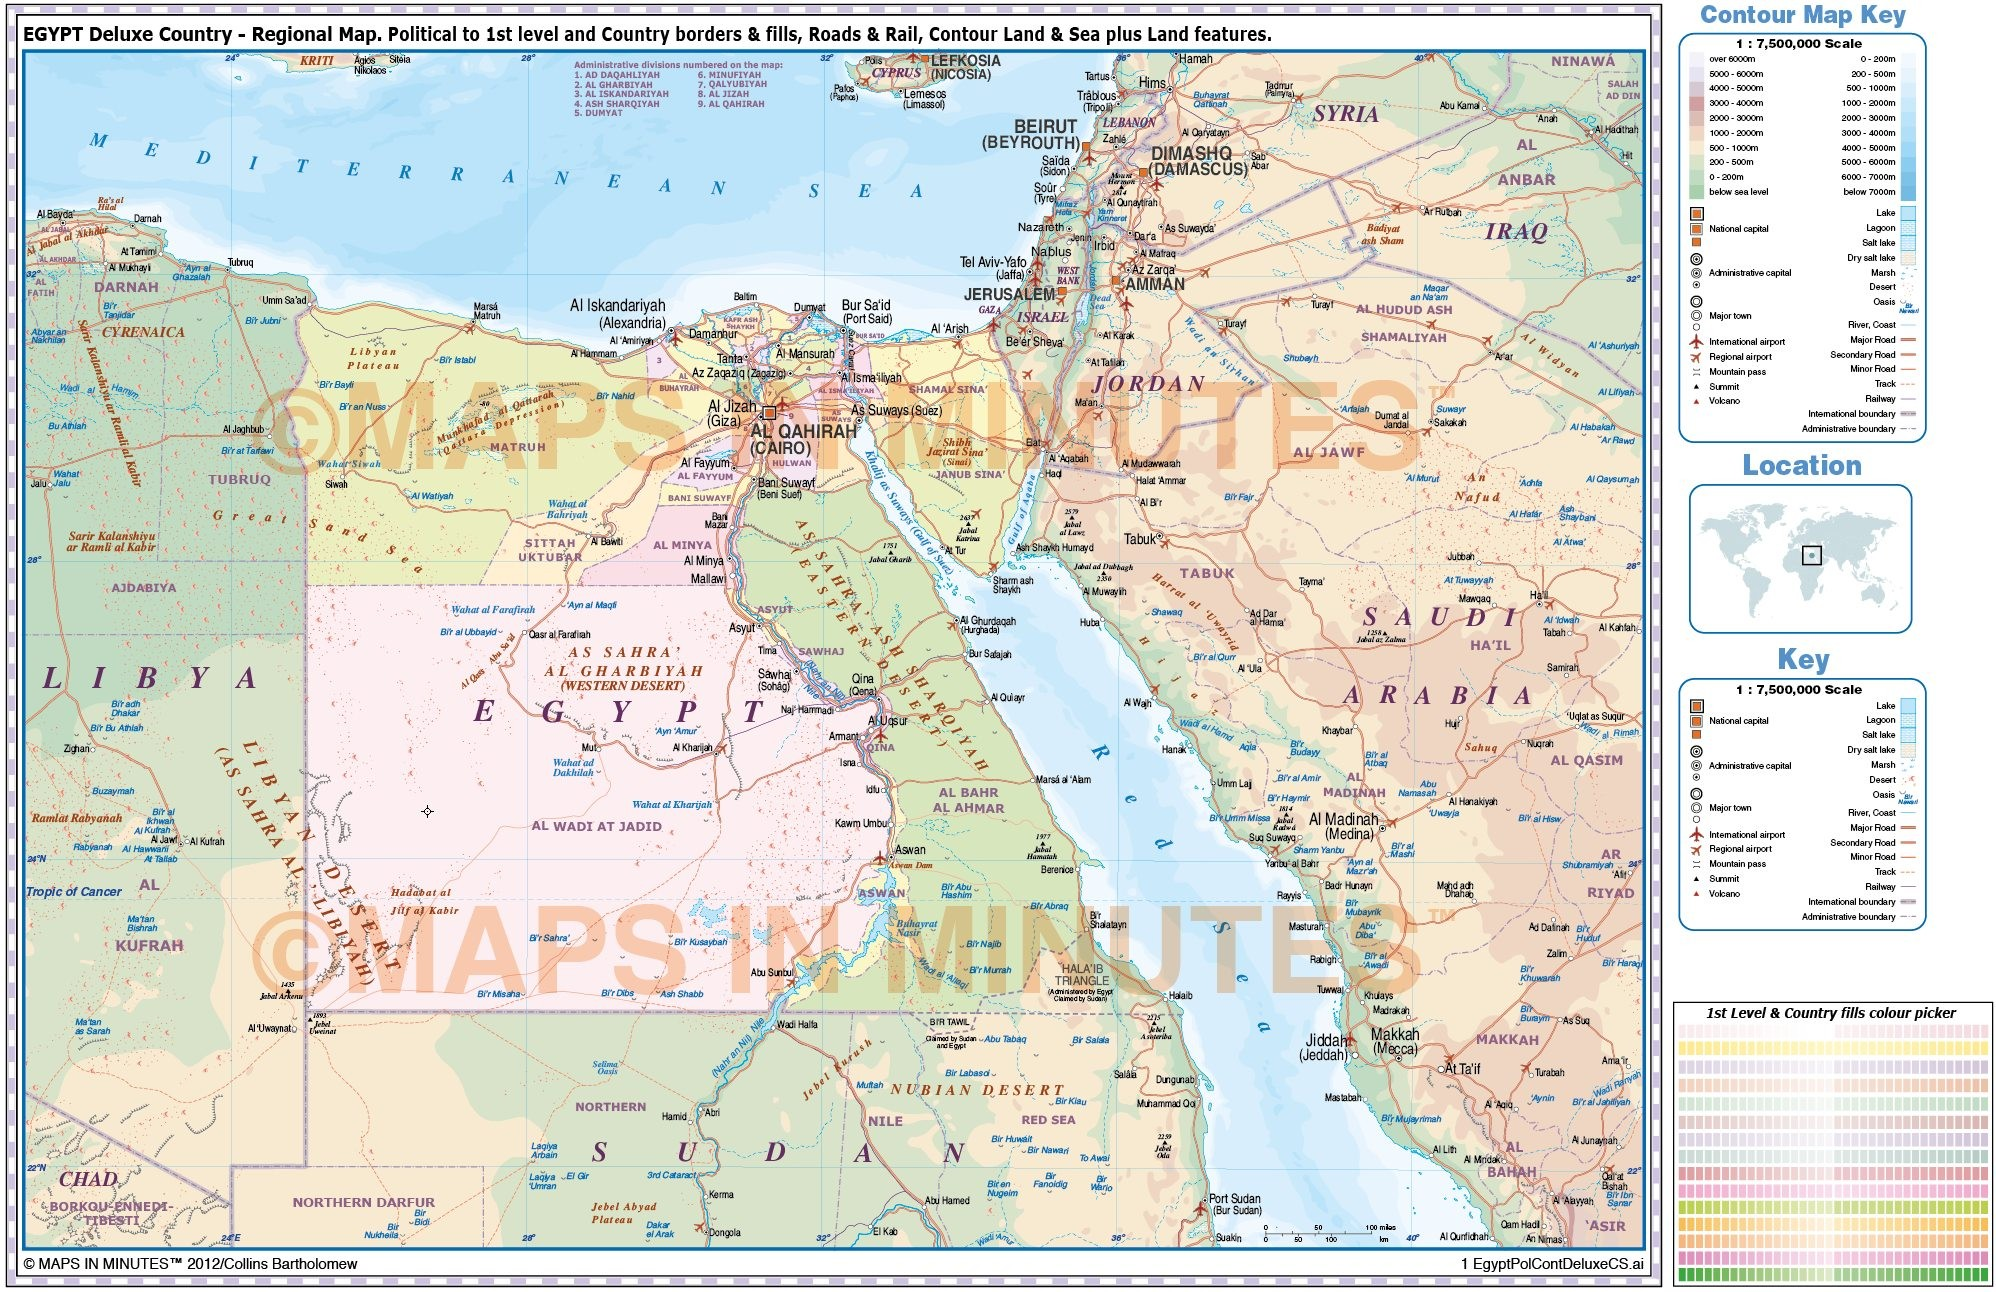 Egypt digital vector political road rail map in illustrator and egypt digital vector political road rail map in illustrator and pdf format royalty free gumiabroncs